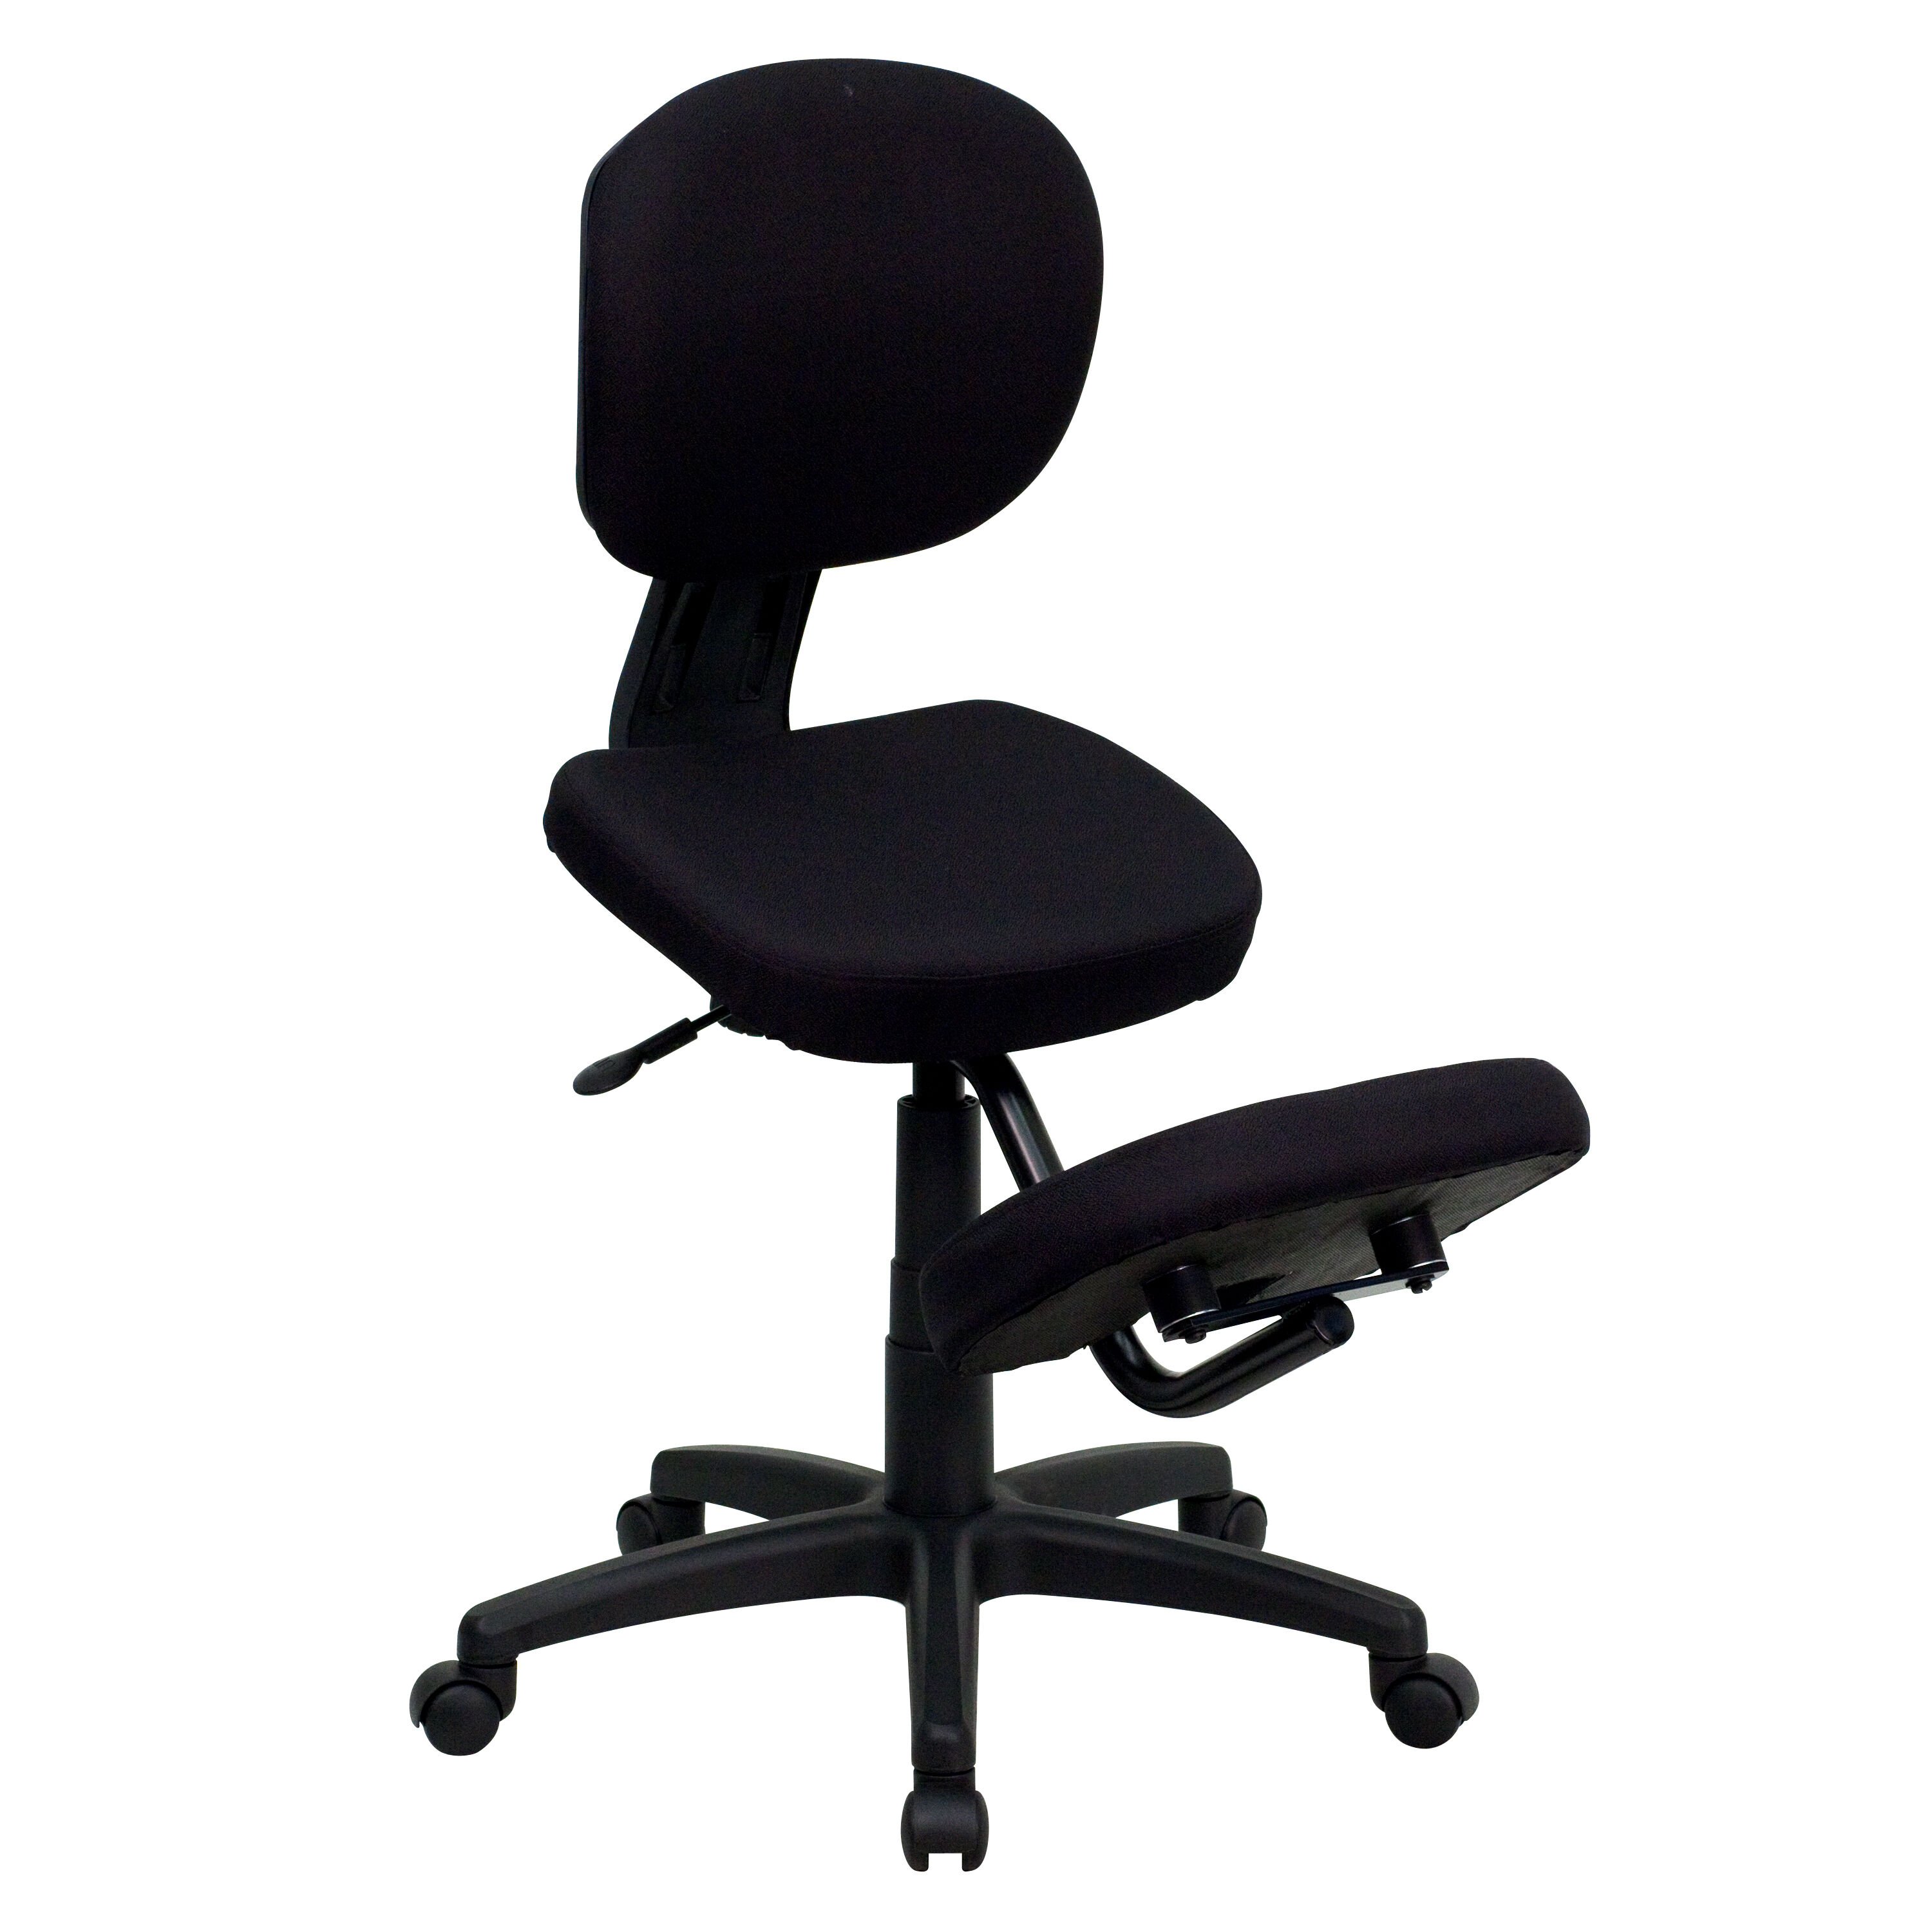 Office Chair Posture Mobile Ergonomic Kneeling Posture Task Office Chair With Back In Black Fabric